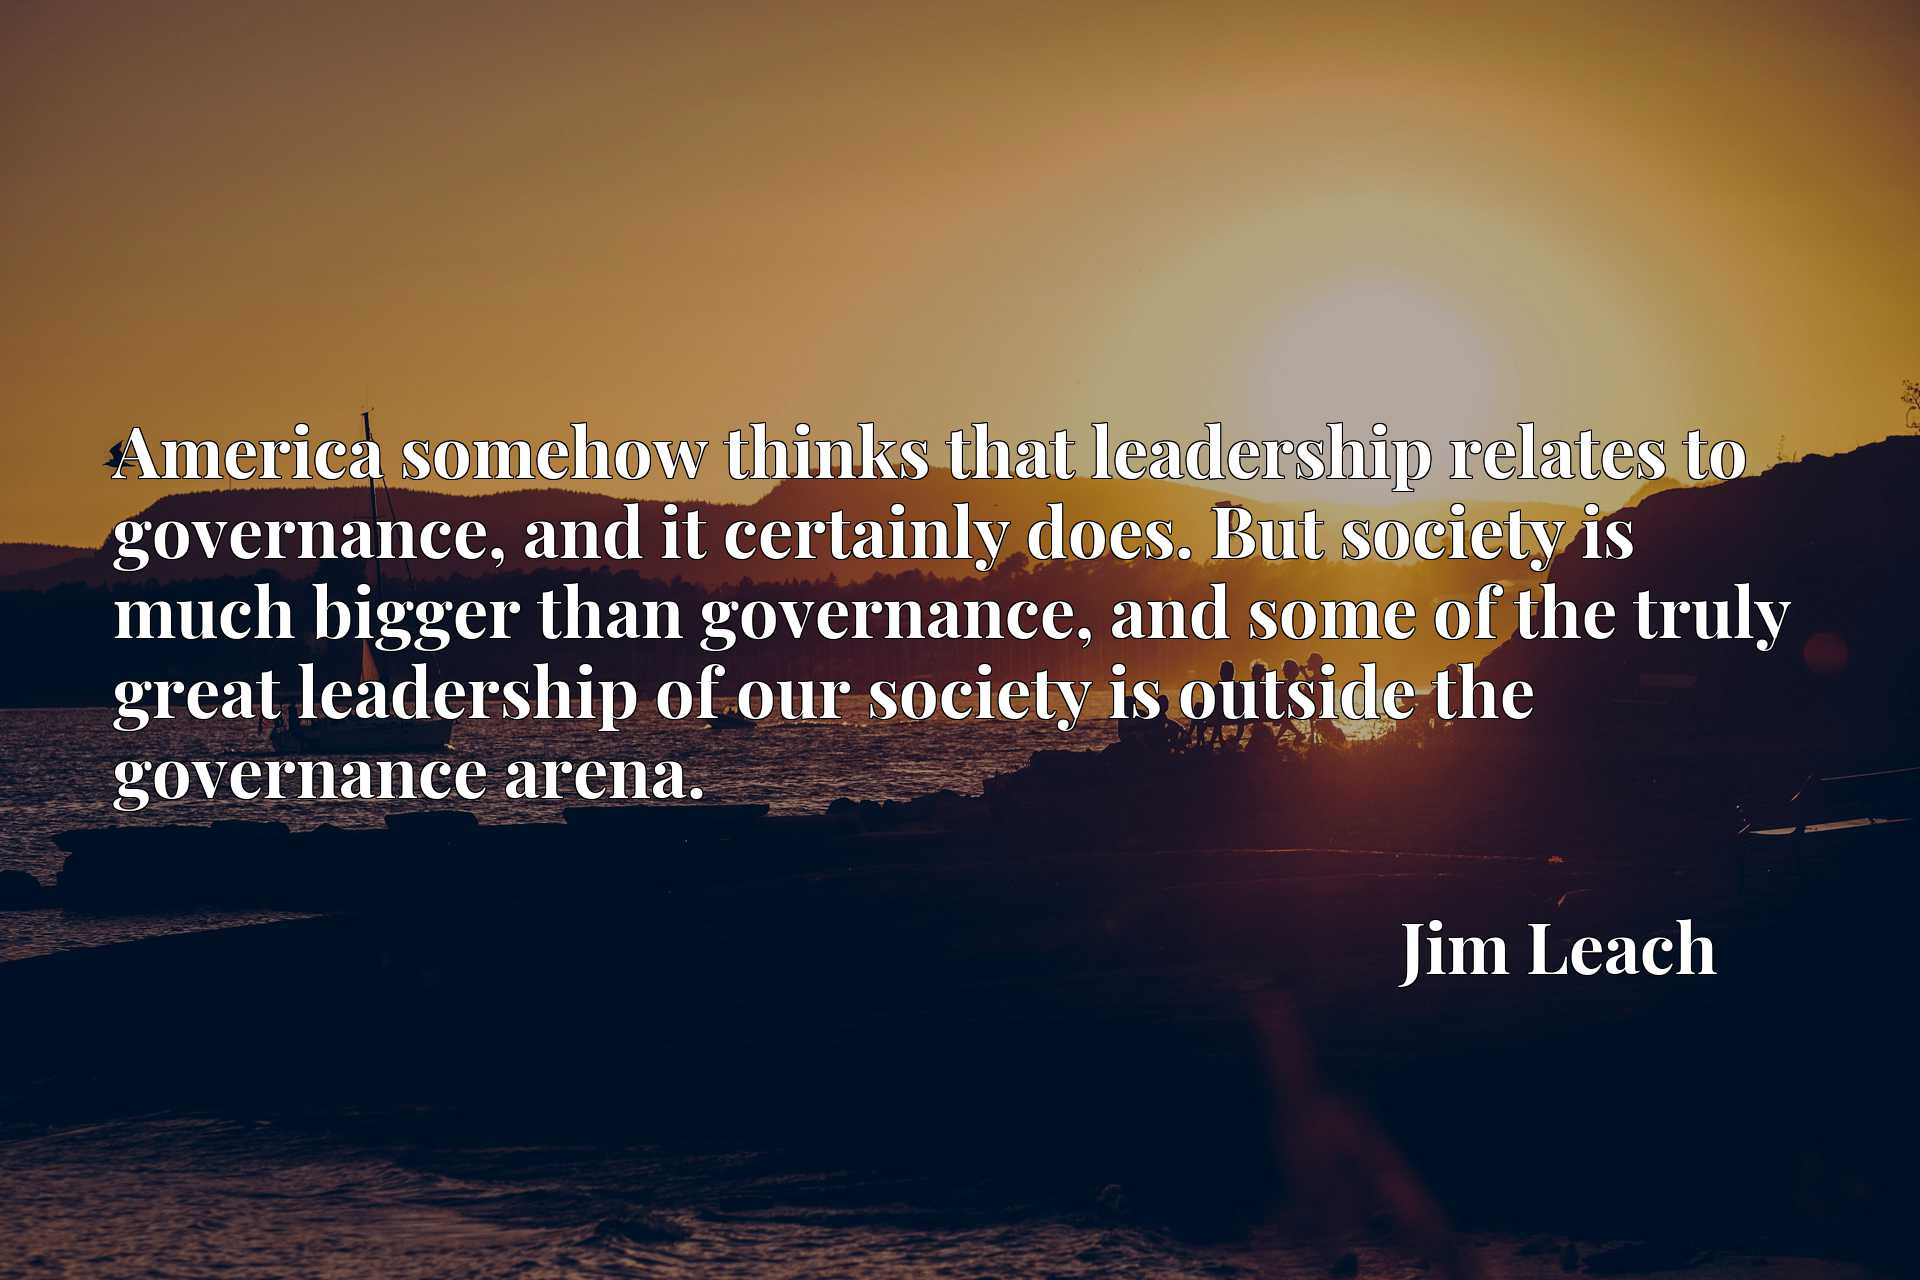 America somehow thinks that leadership relates to governance, and it certainly does. But society is much bigger than governance, and some of the truly great leadership of our society is outside the governance arena.